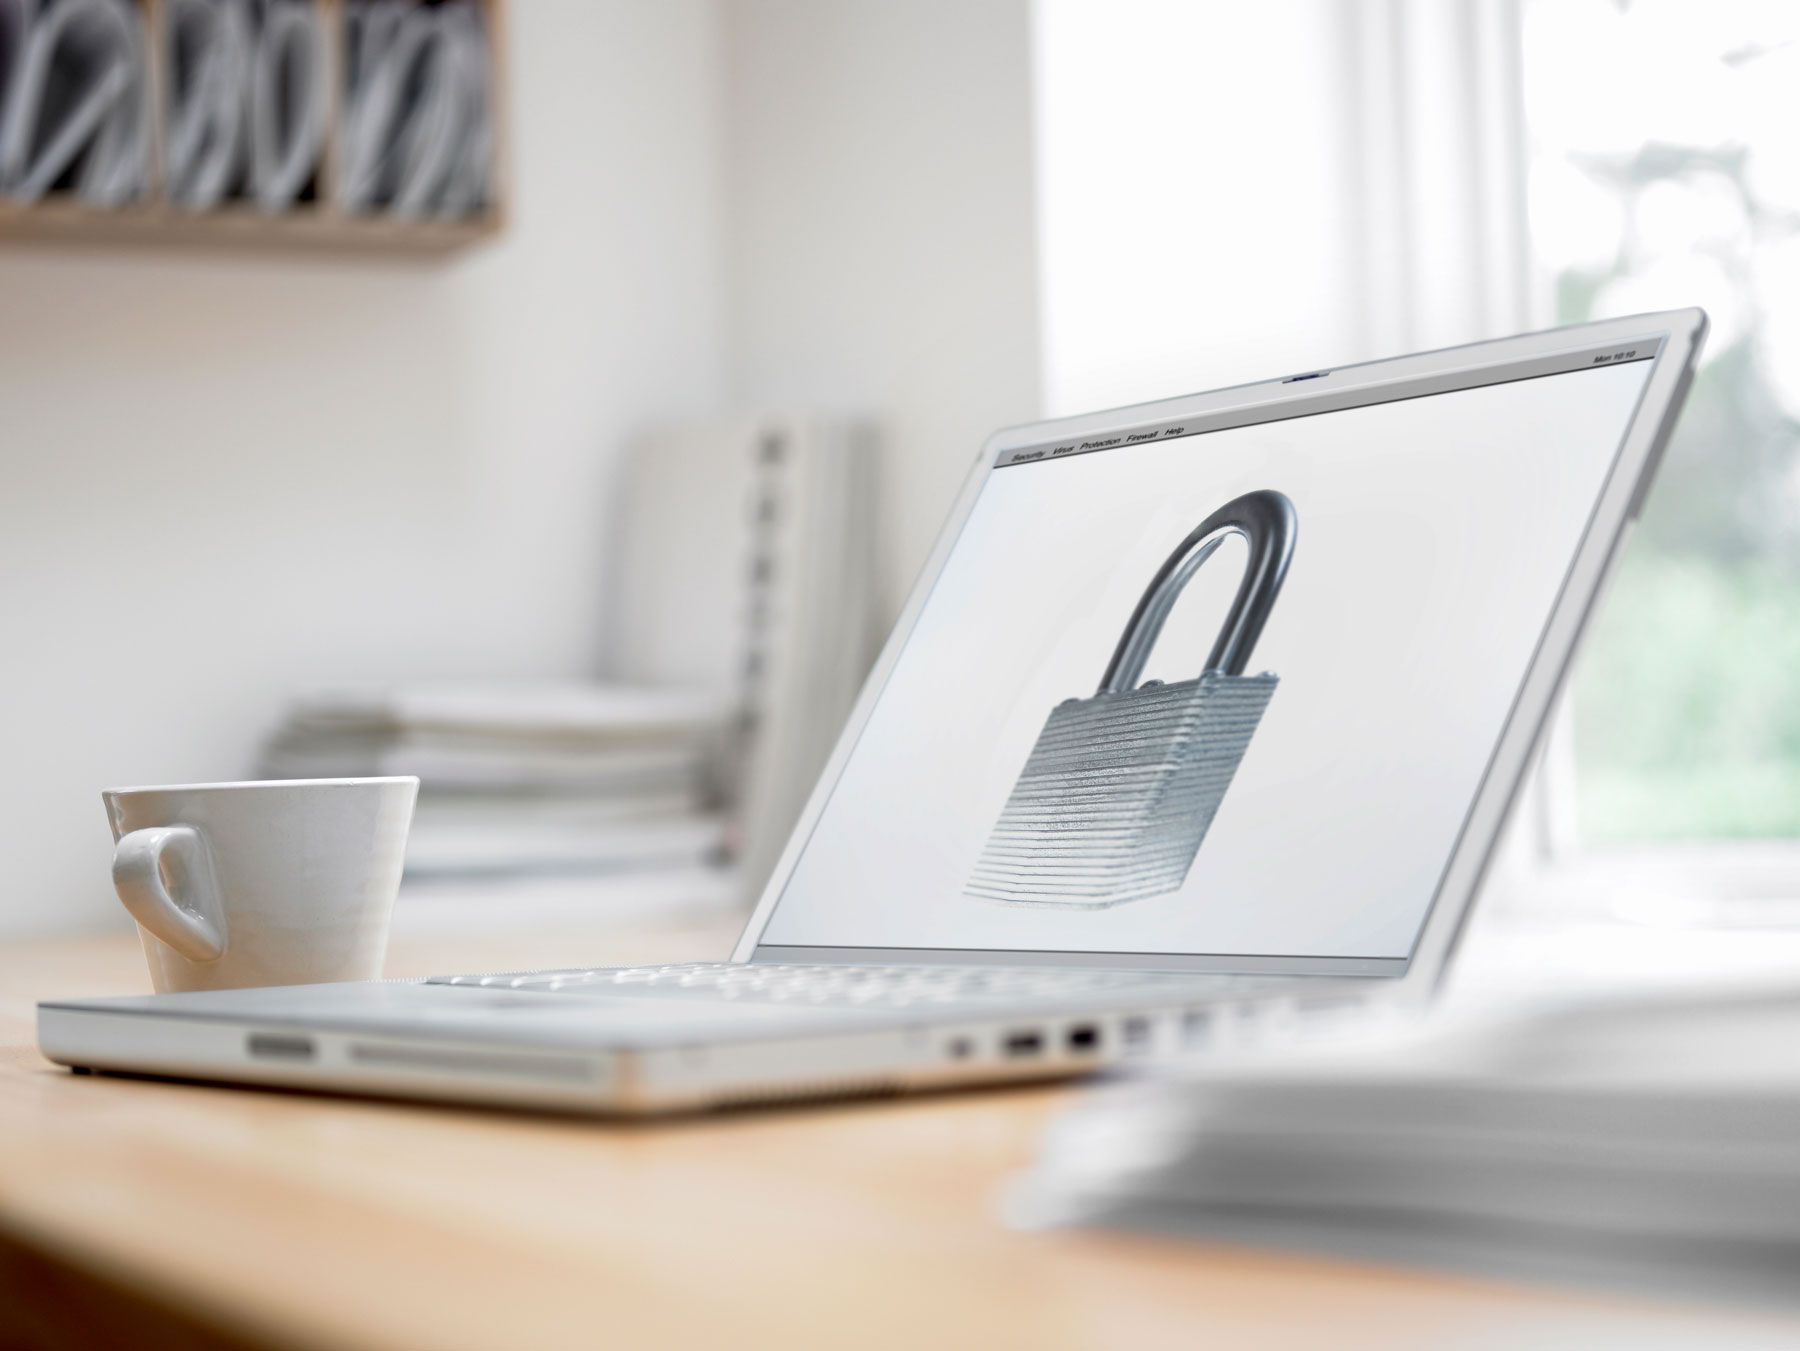 Working from home digital safety tips, advice - computer security